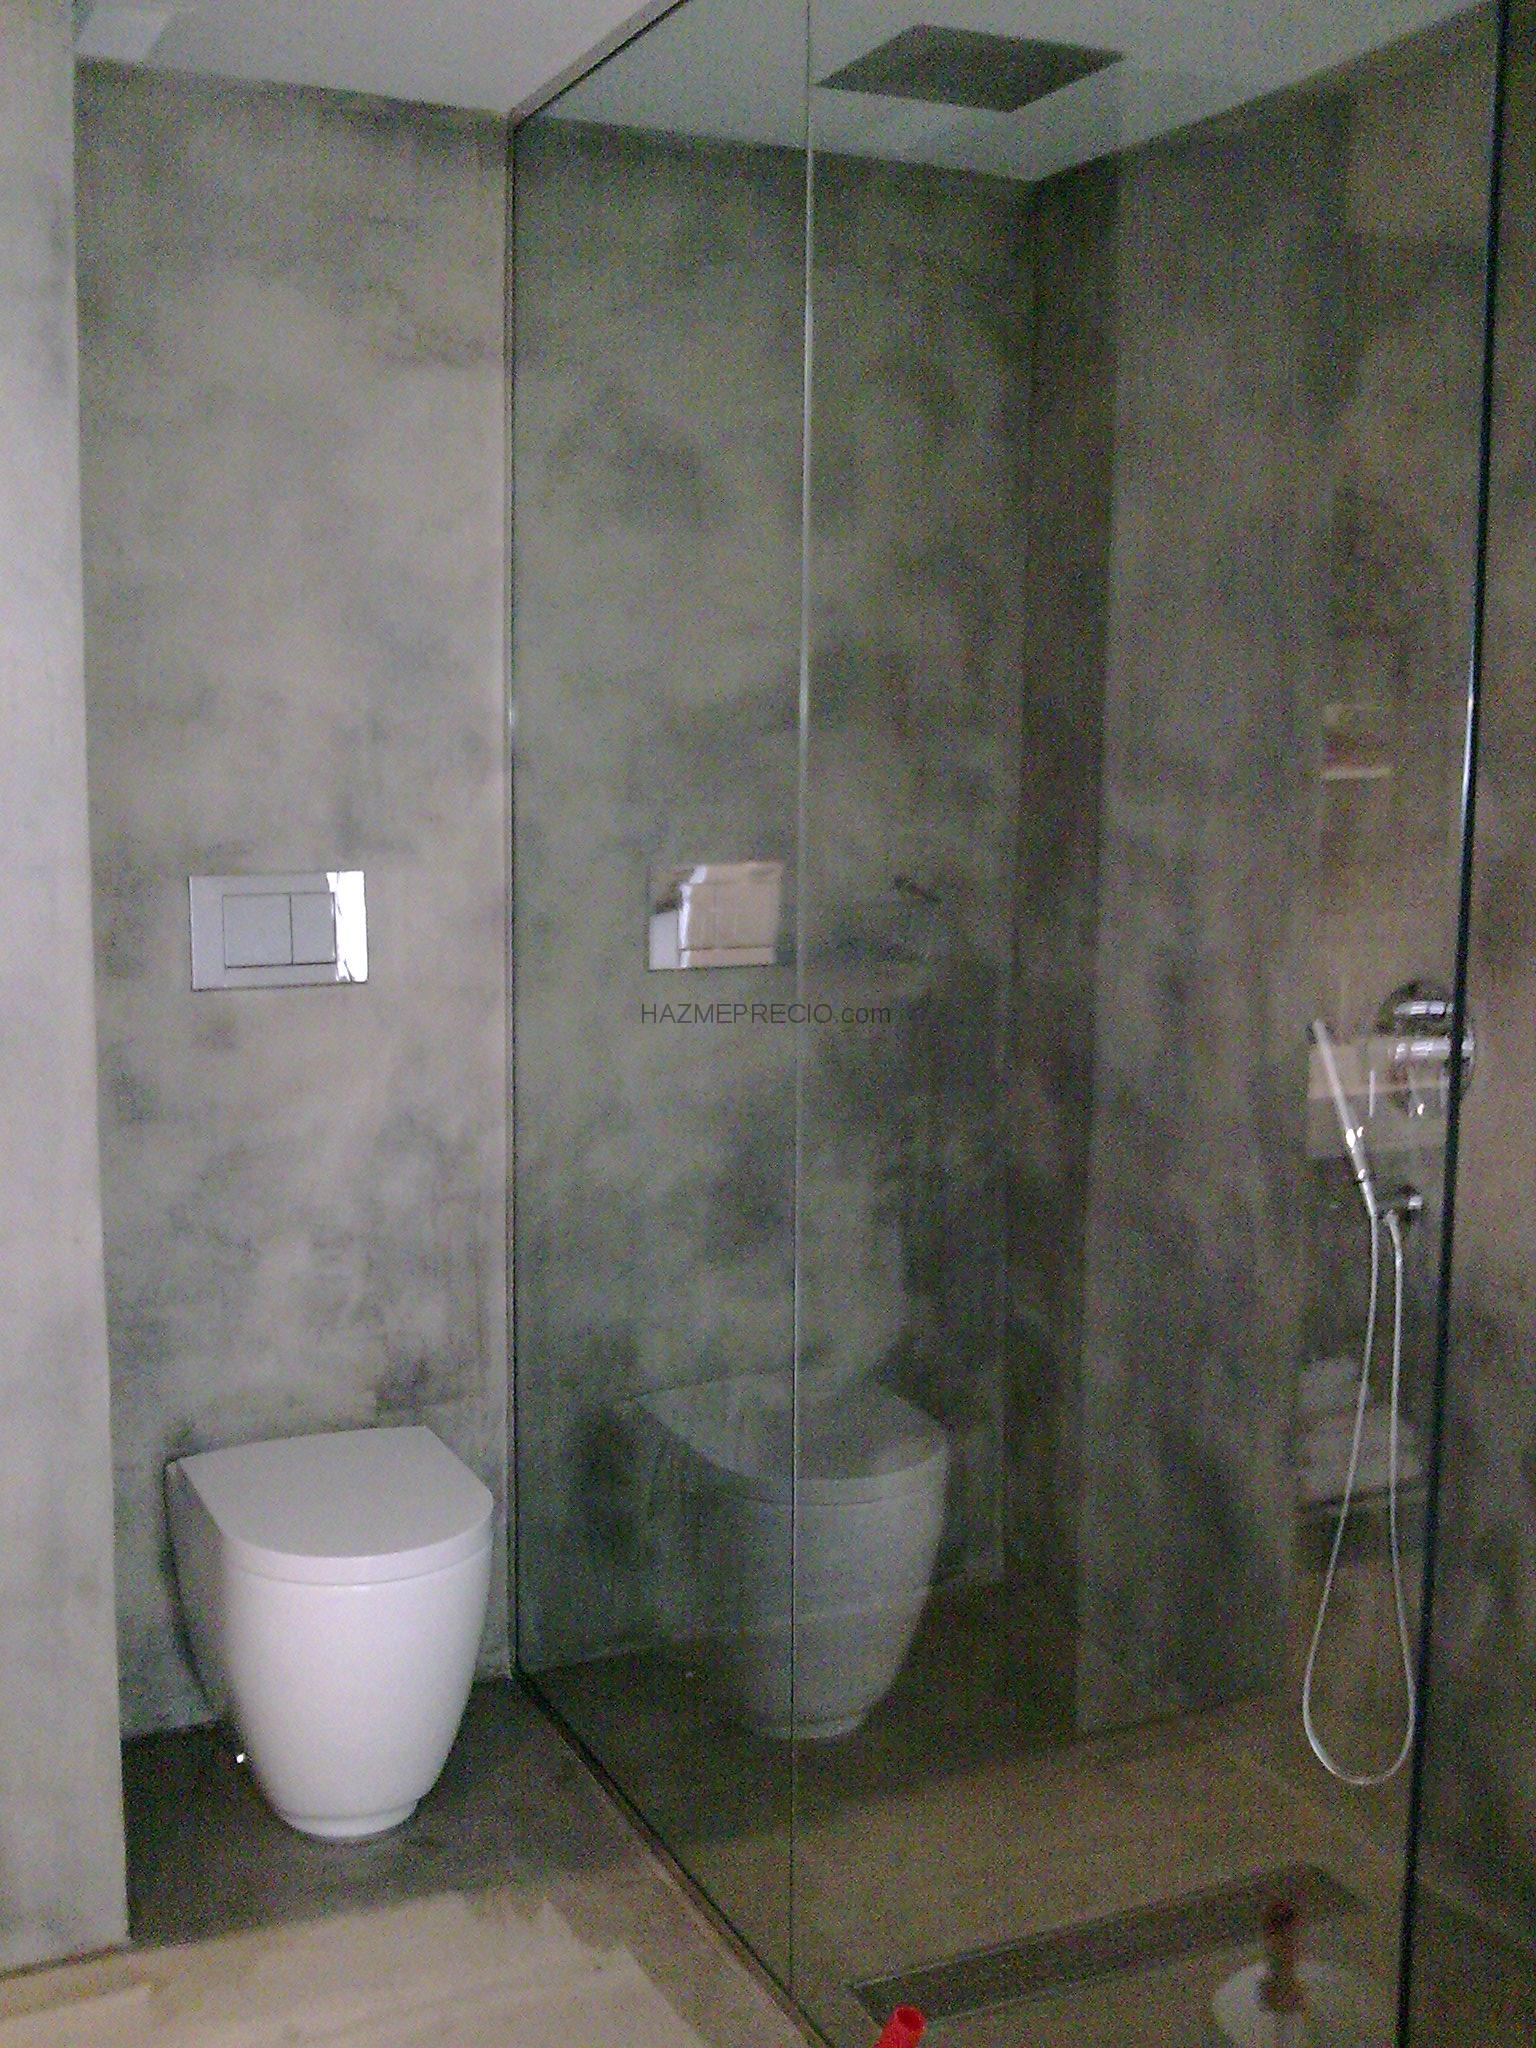 Baños Microcemento Fotos:Baño En Microcemento Suelo En Laminado 100 Pictures to pin on